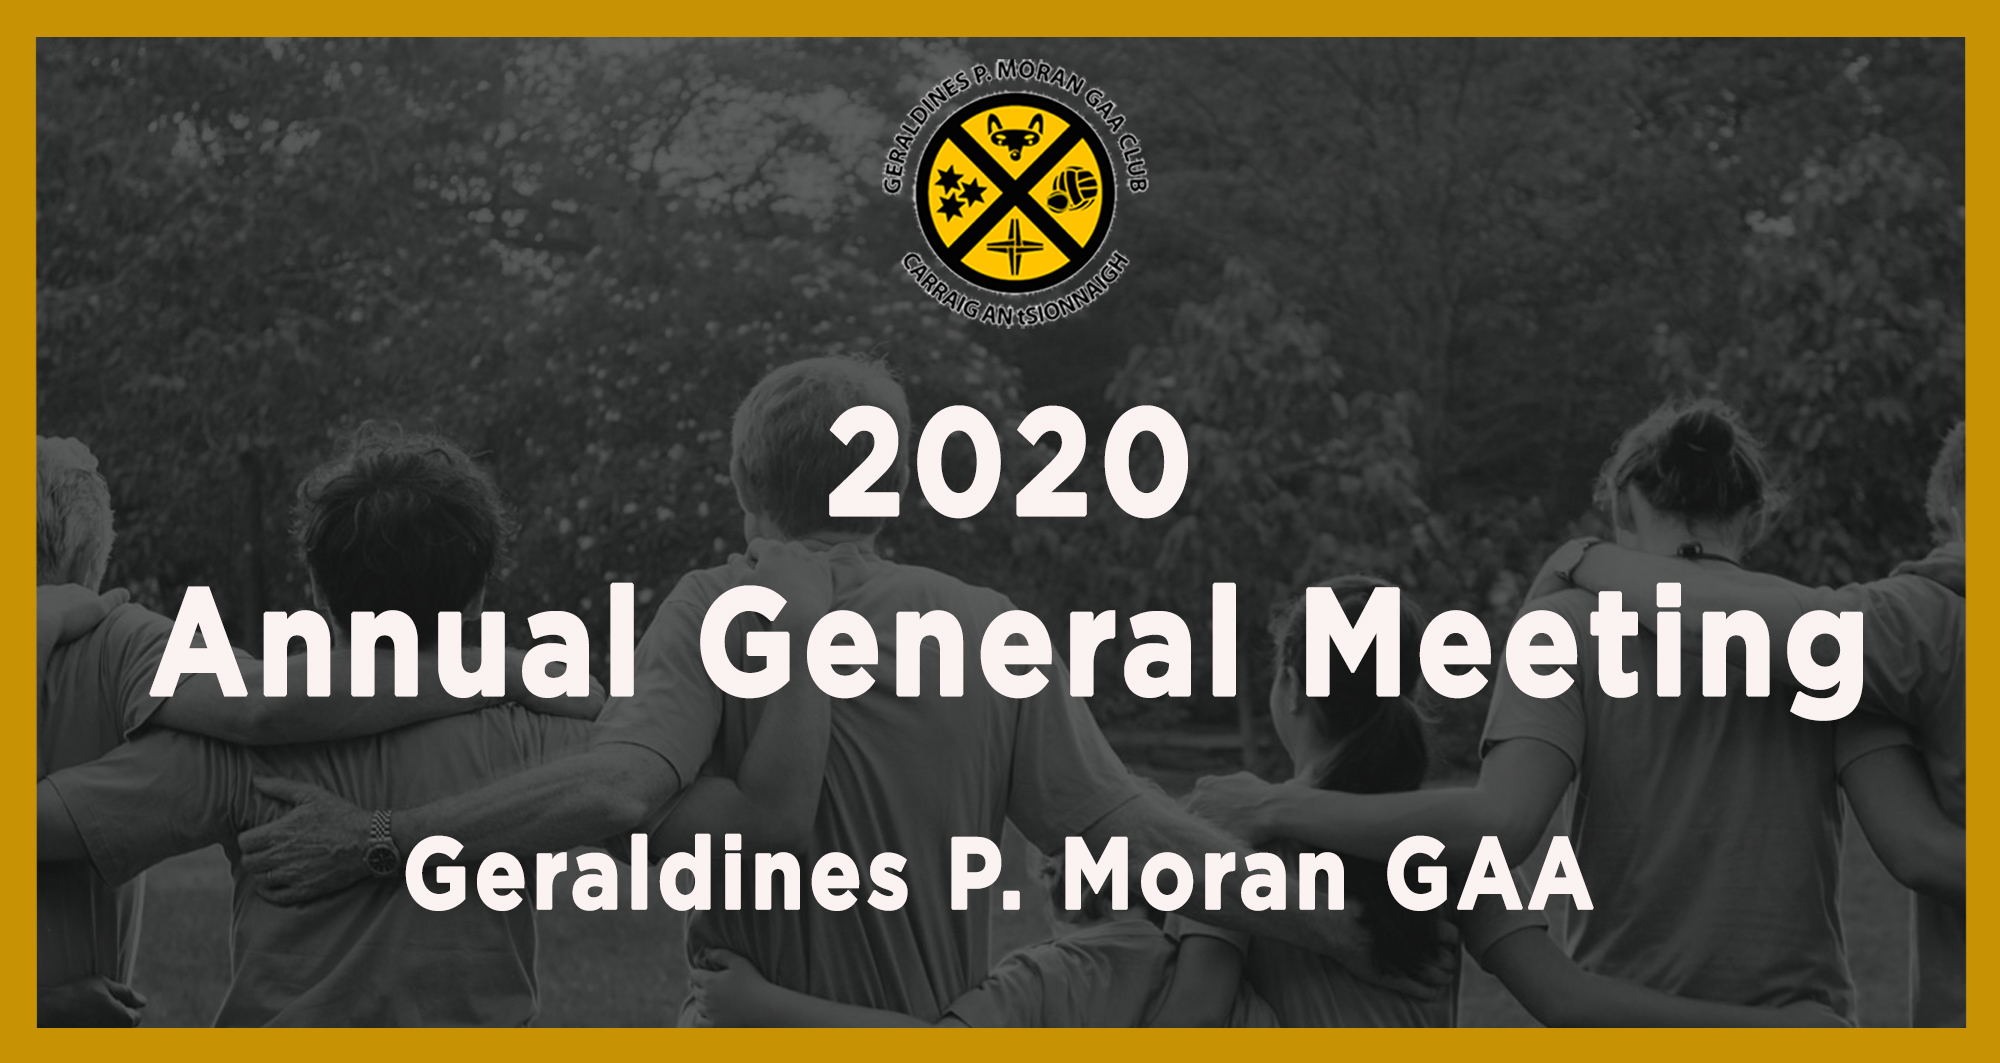 Gers agm 2020